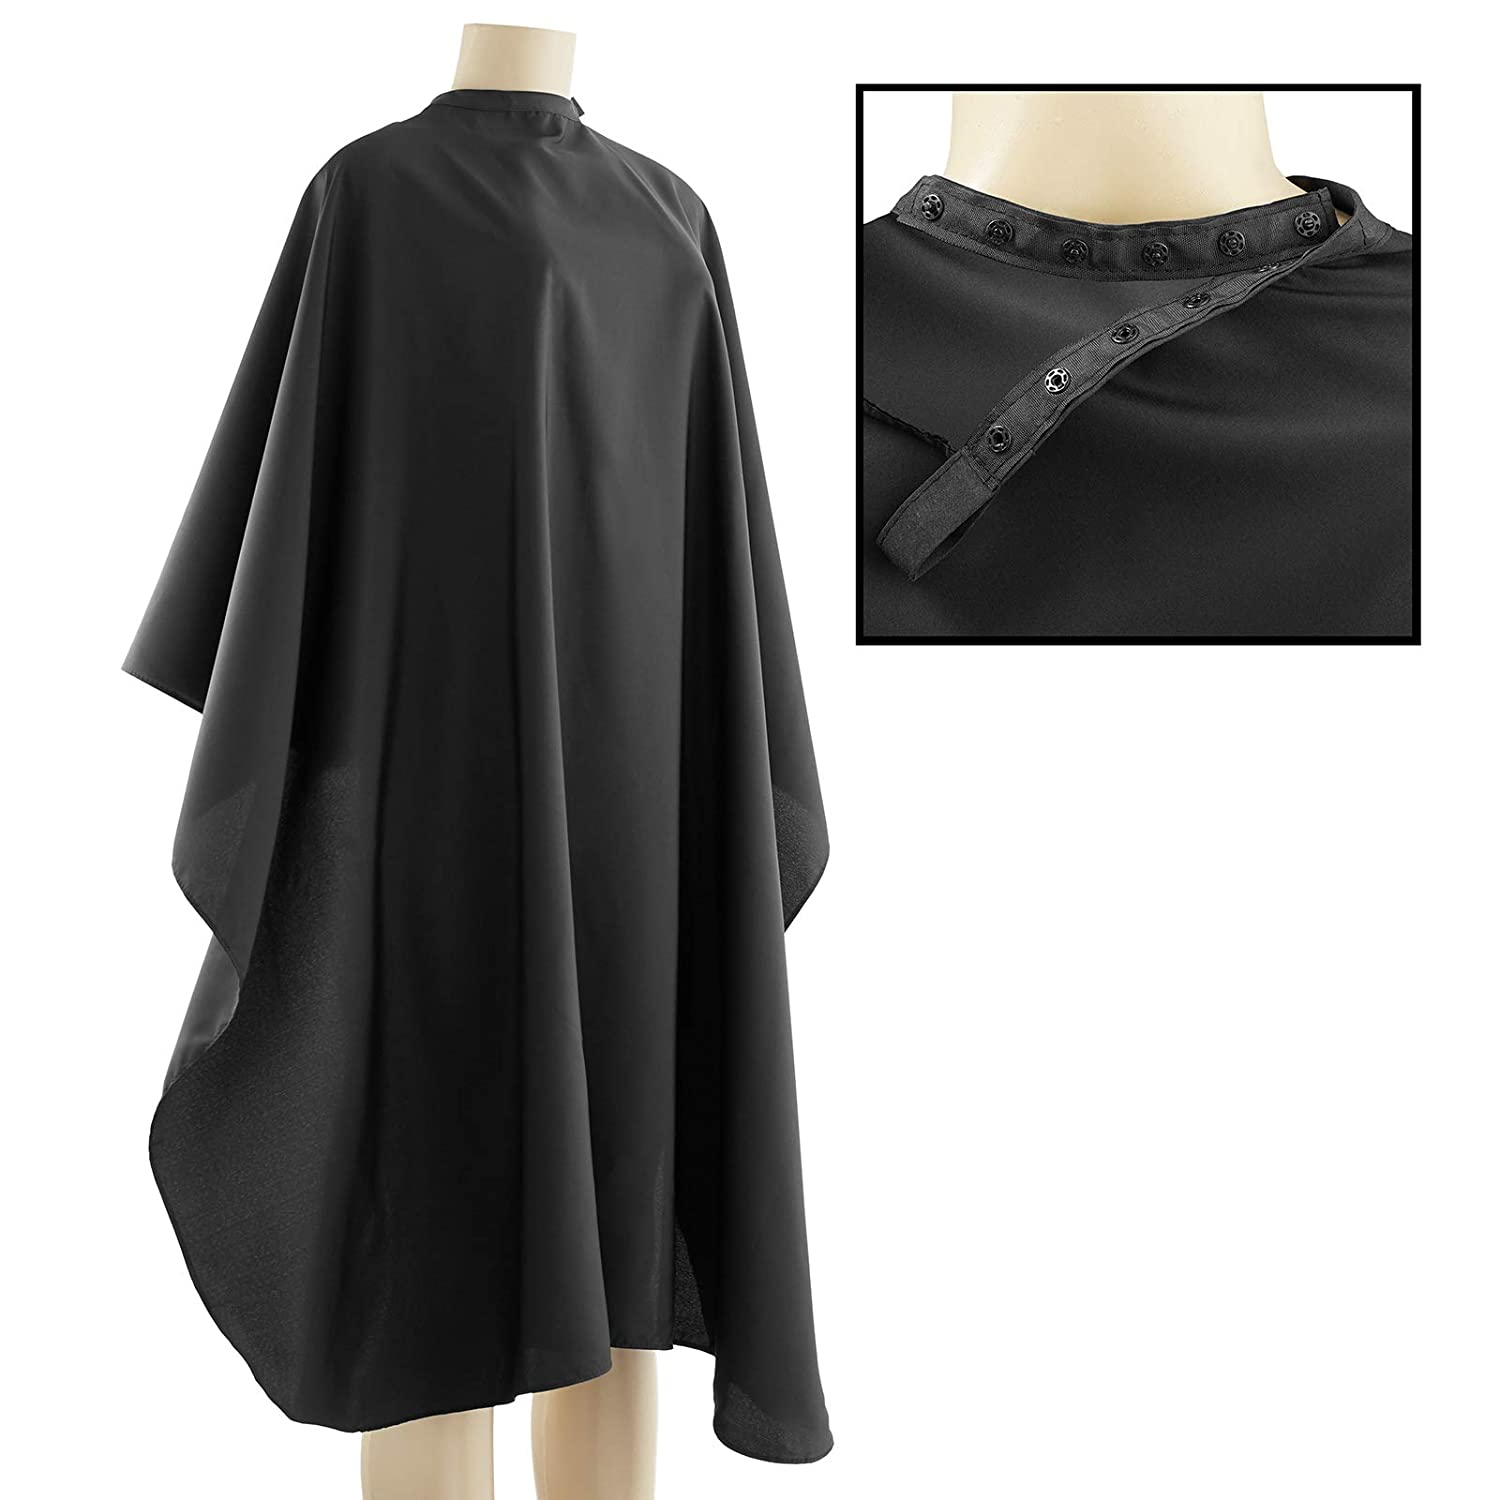 Salon Sundry Professional Hair Salon Nylon Cape w/Snap Closure - 50 in. x 60 in. : Hair Styling Products : Beauty